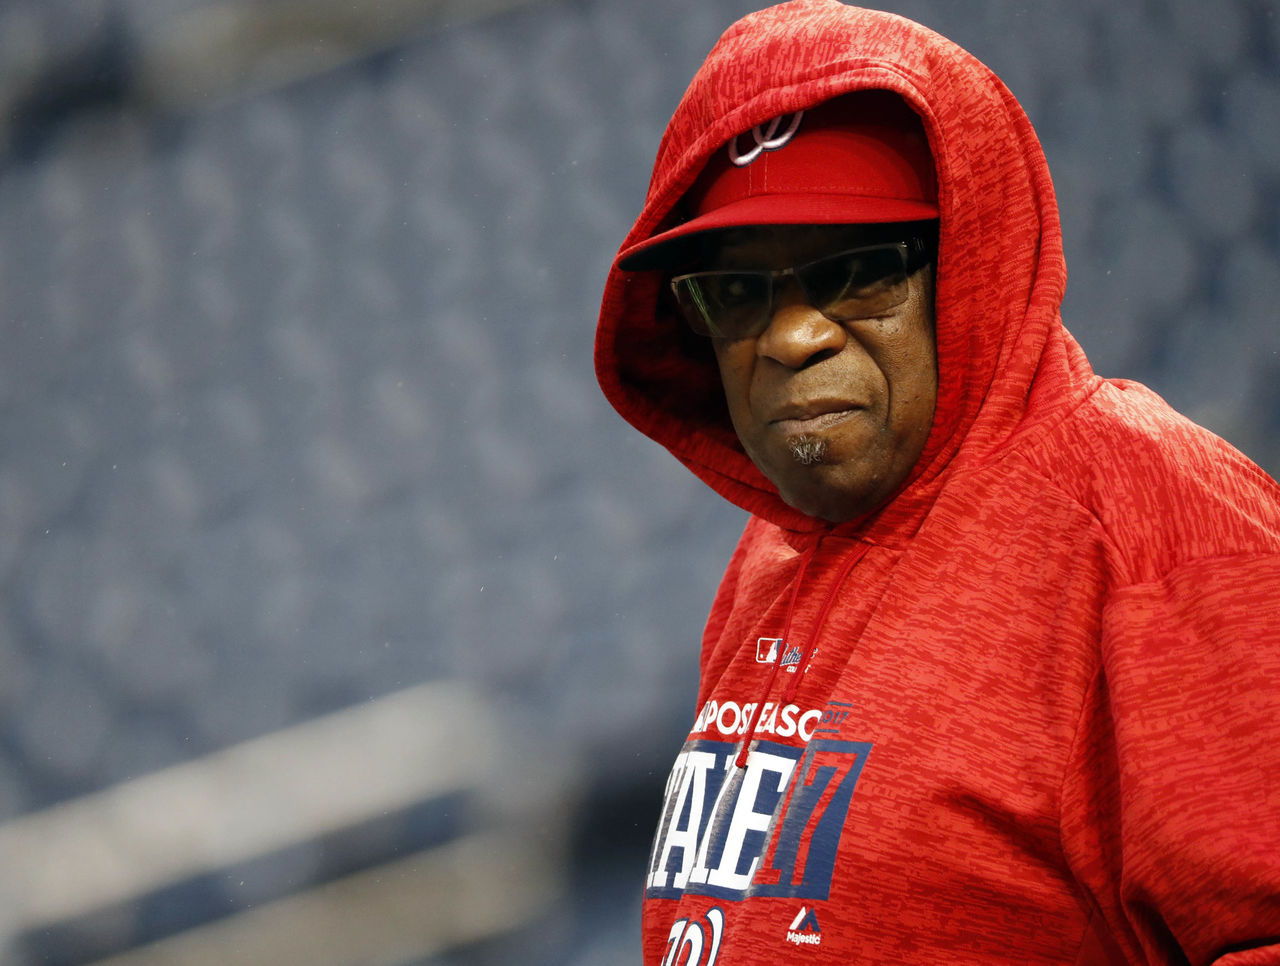 Poll Was Game 5 Dusty Baker's Last Game With Nationals